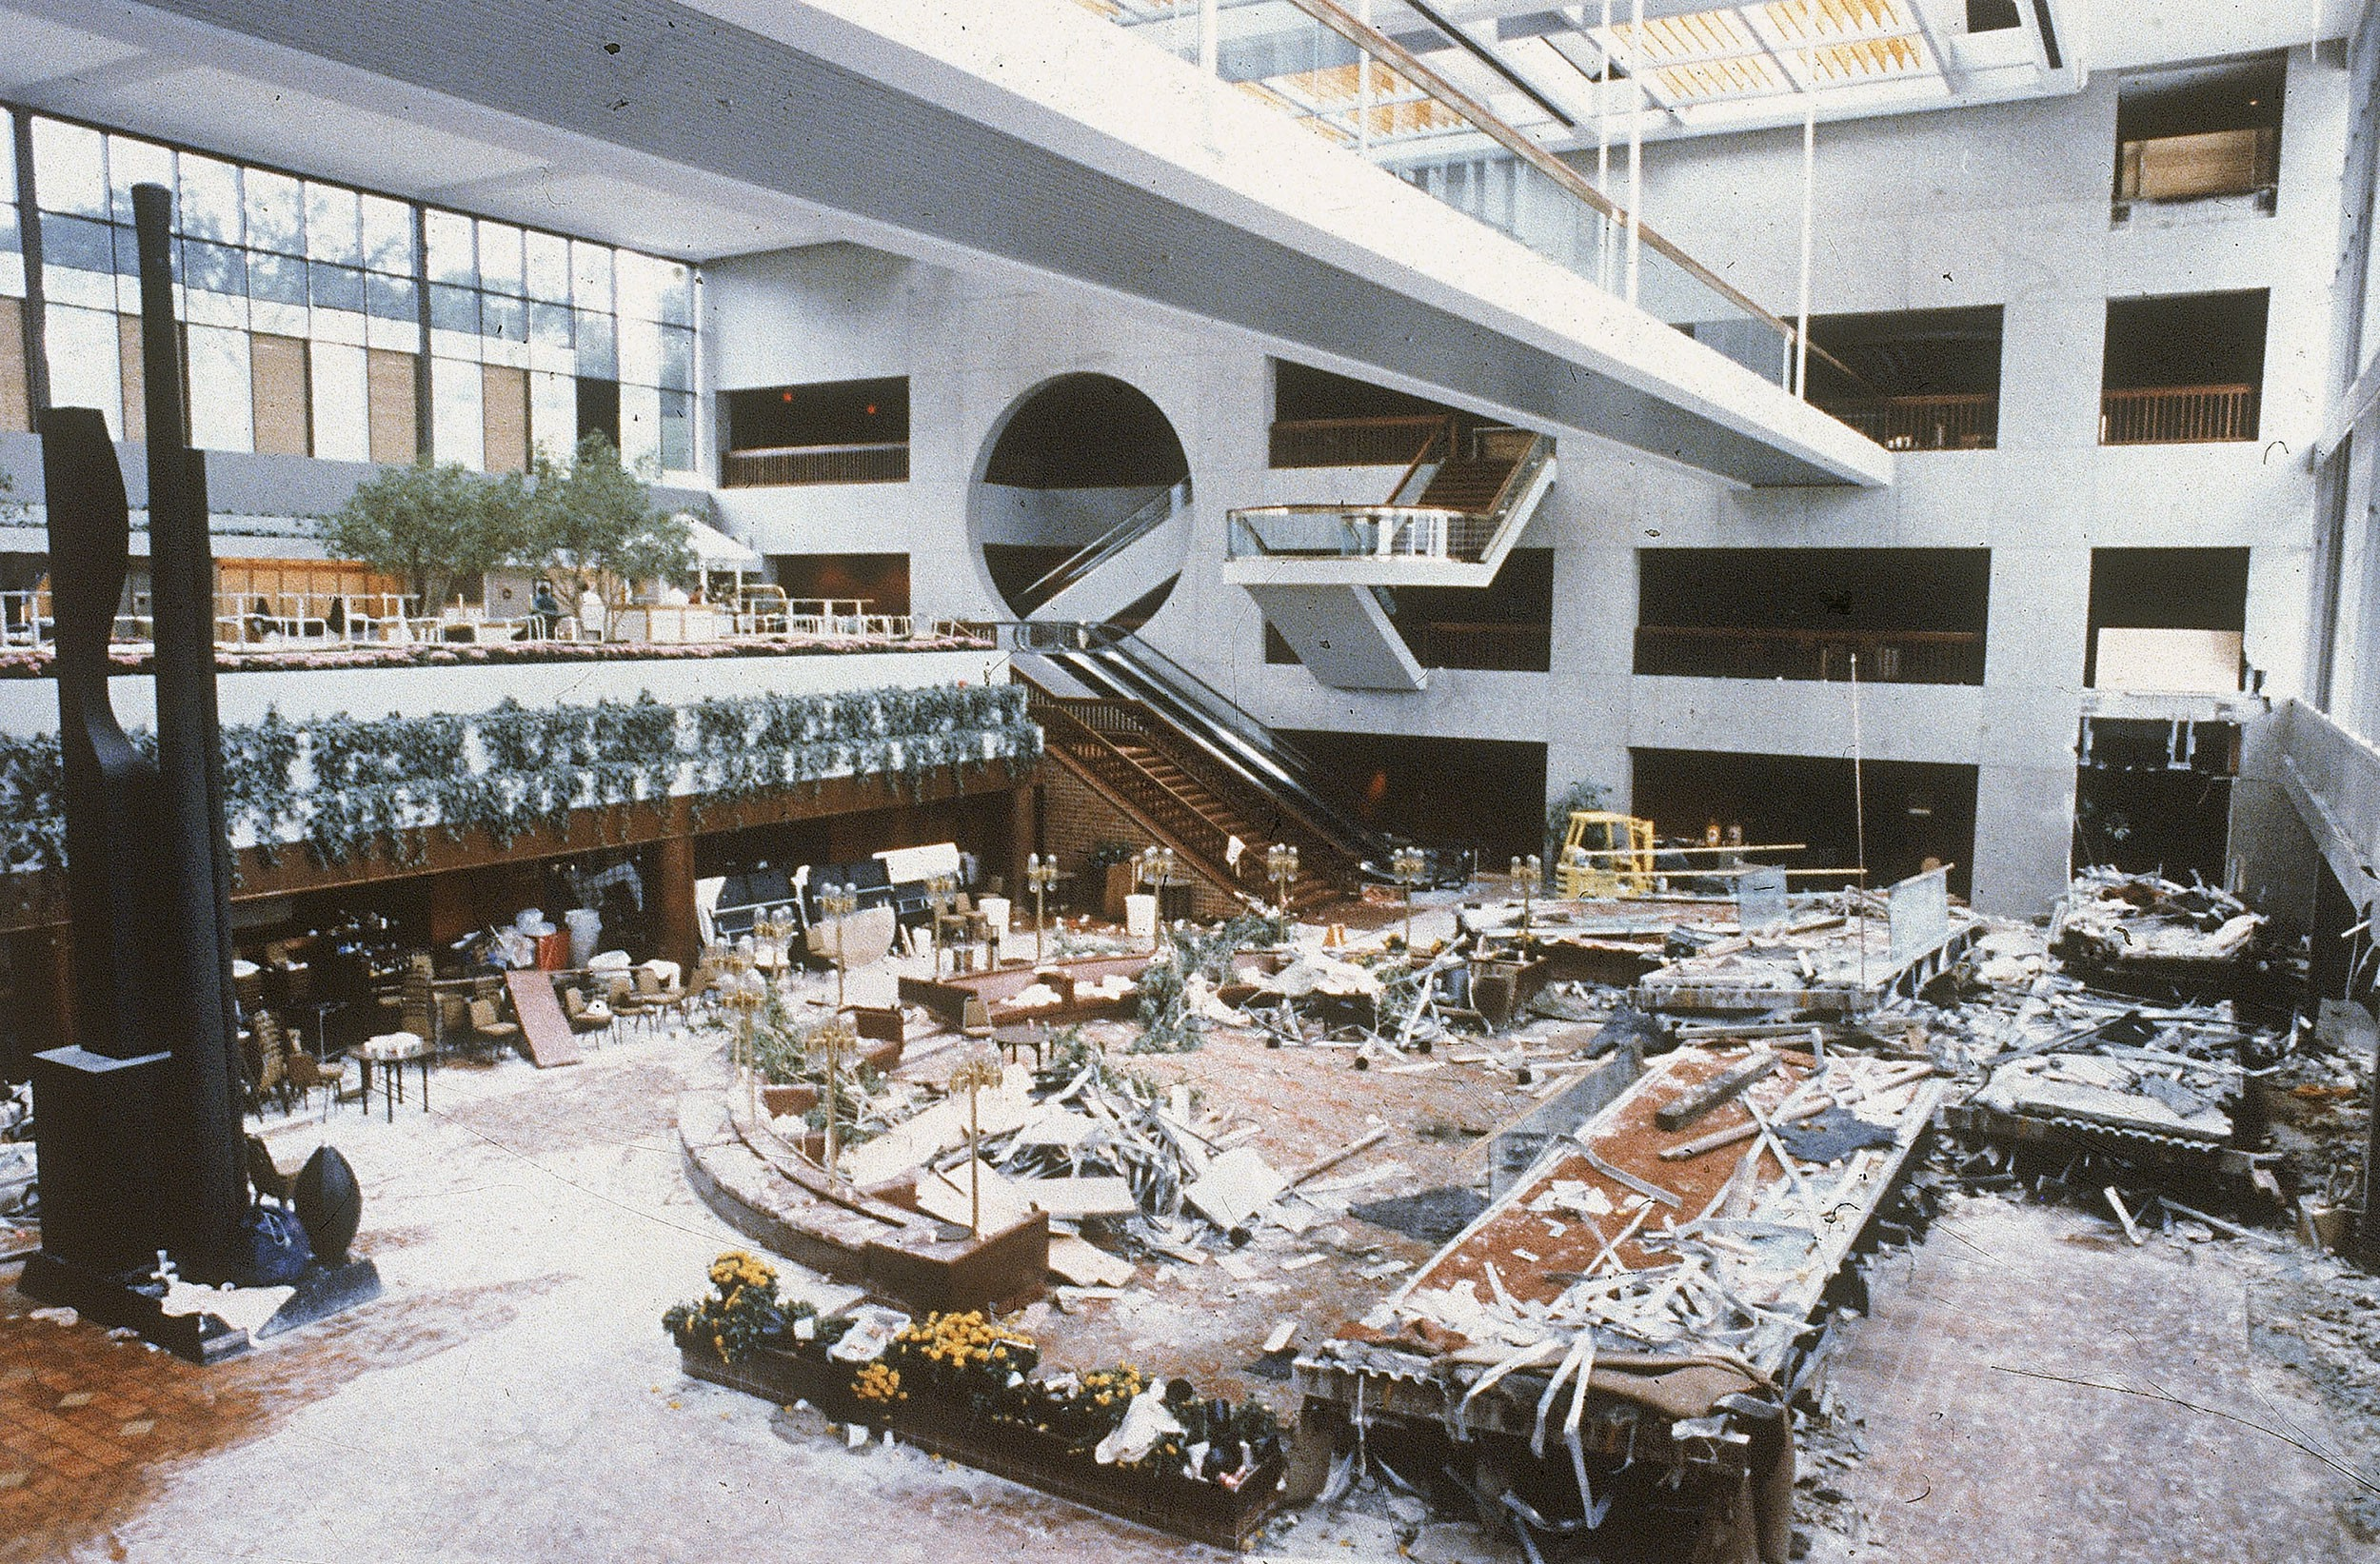 When this hotel skywalk collapsed, it was one of the deadliest